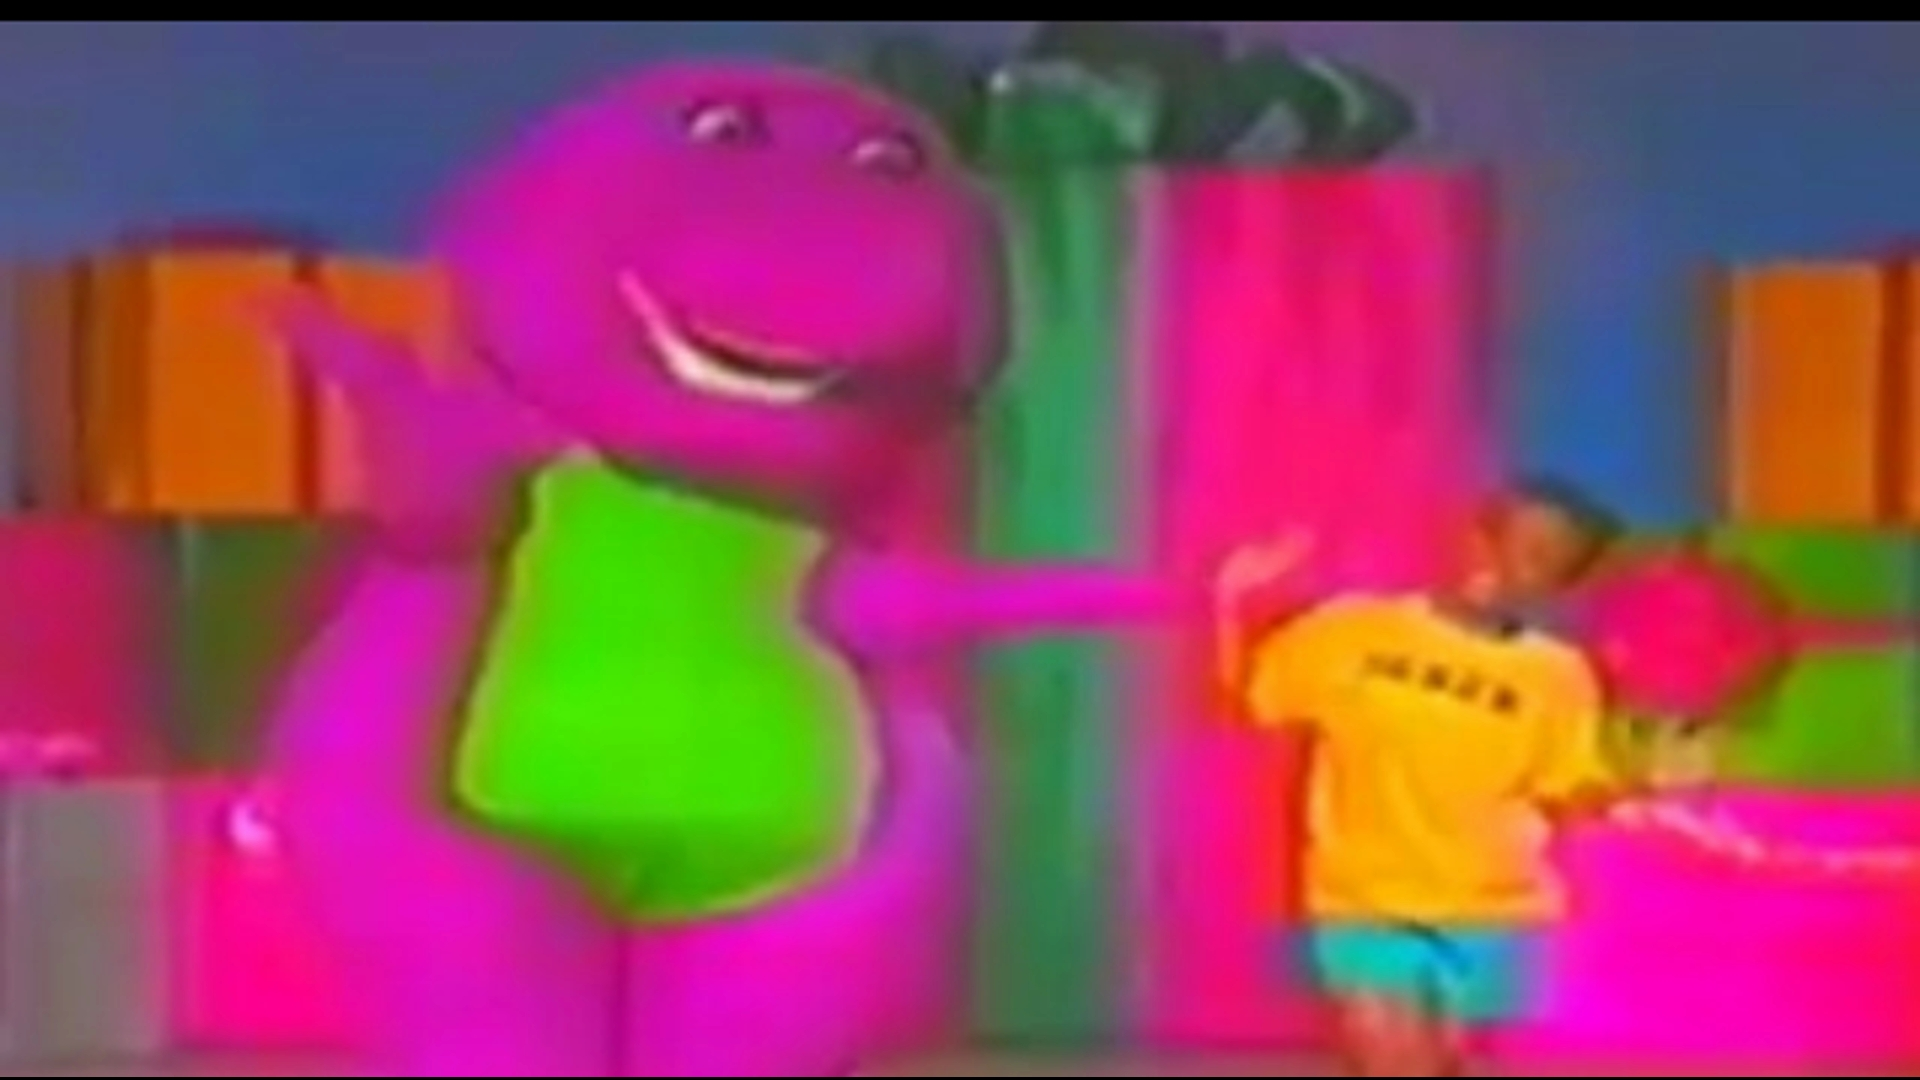 Image Barney And Derekjpg Barney Wiki FANDOM Powered By Wikia - Concert barney wiki